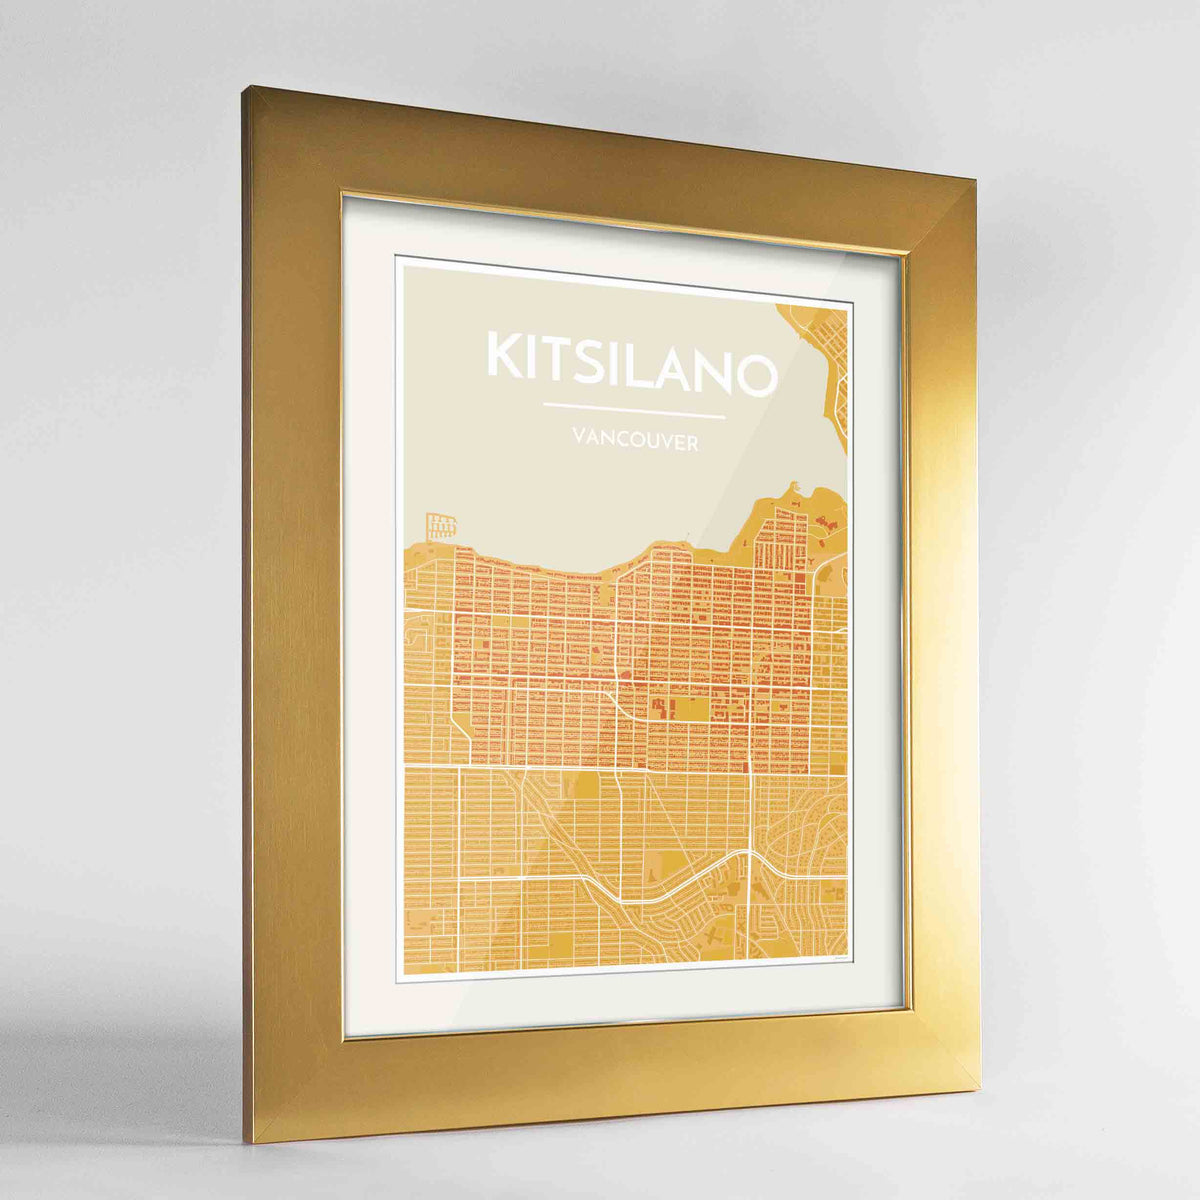 "Framed Kitsilano Vancouver Map Art Print 24x36"" Gold frame Point Two Design Group"